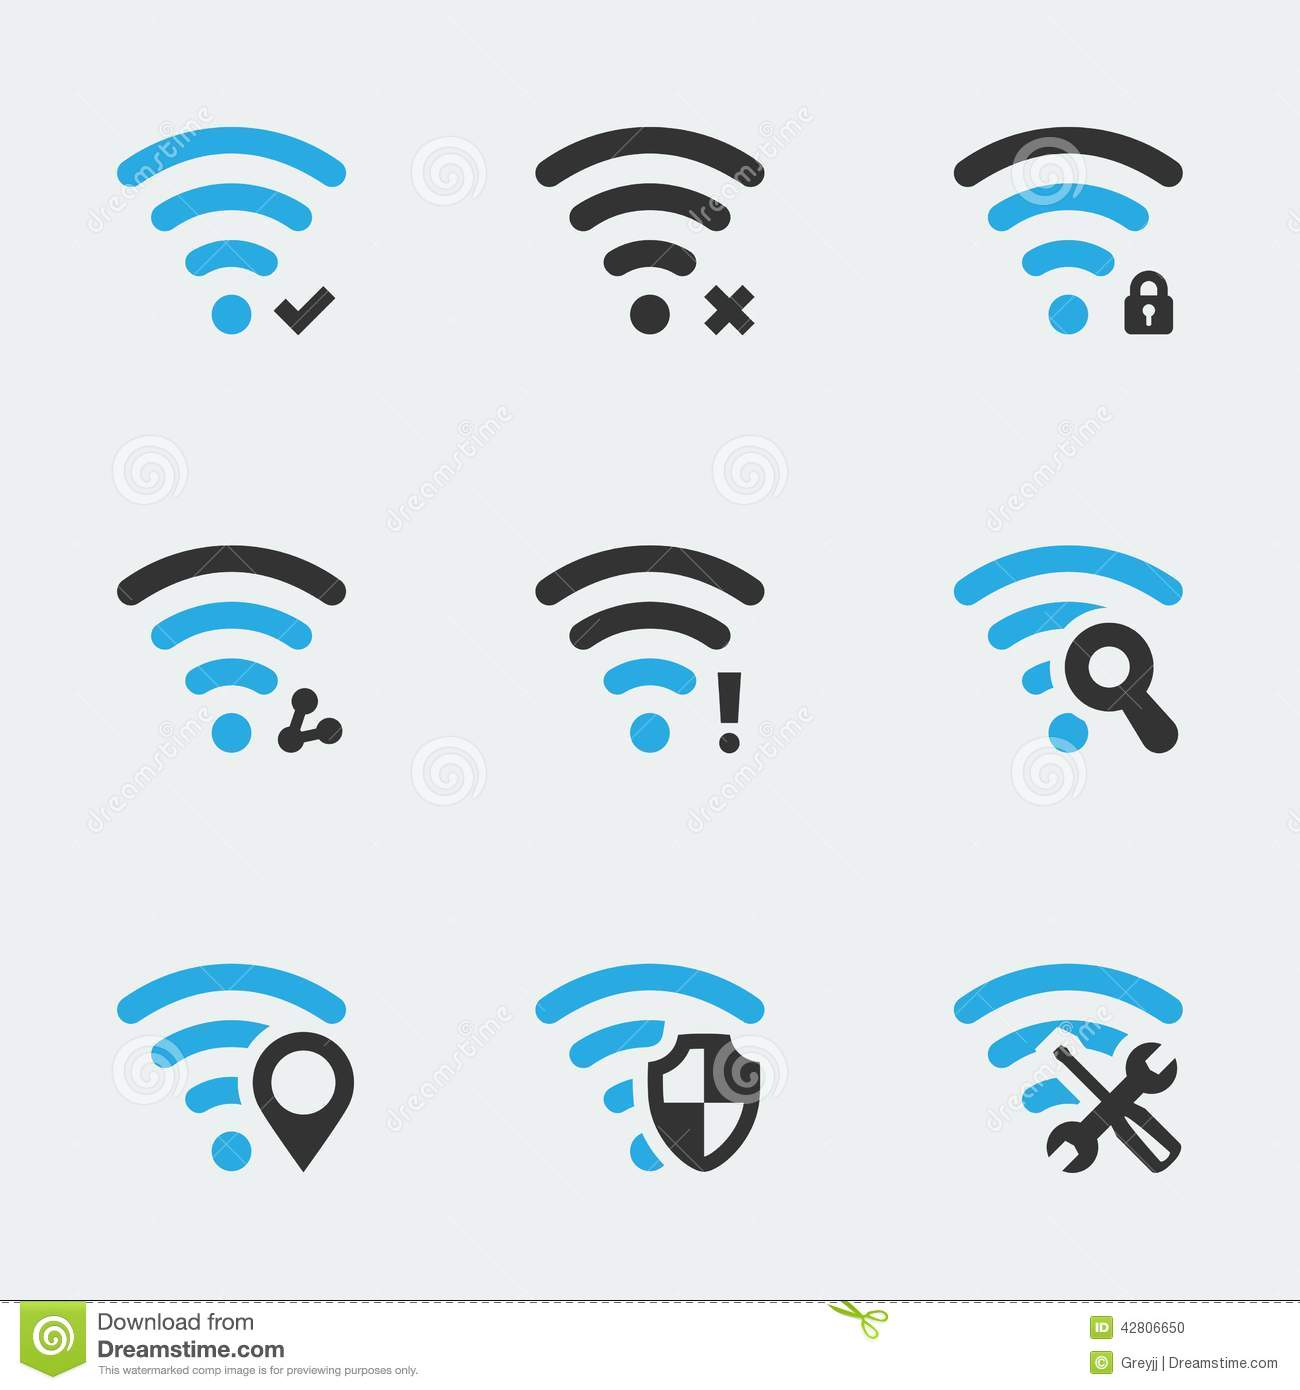 how to set phone to only download on wifi